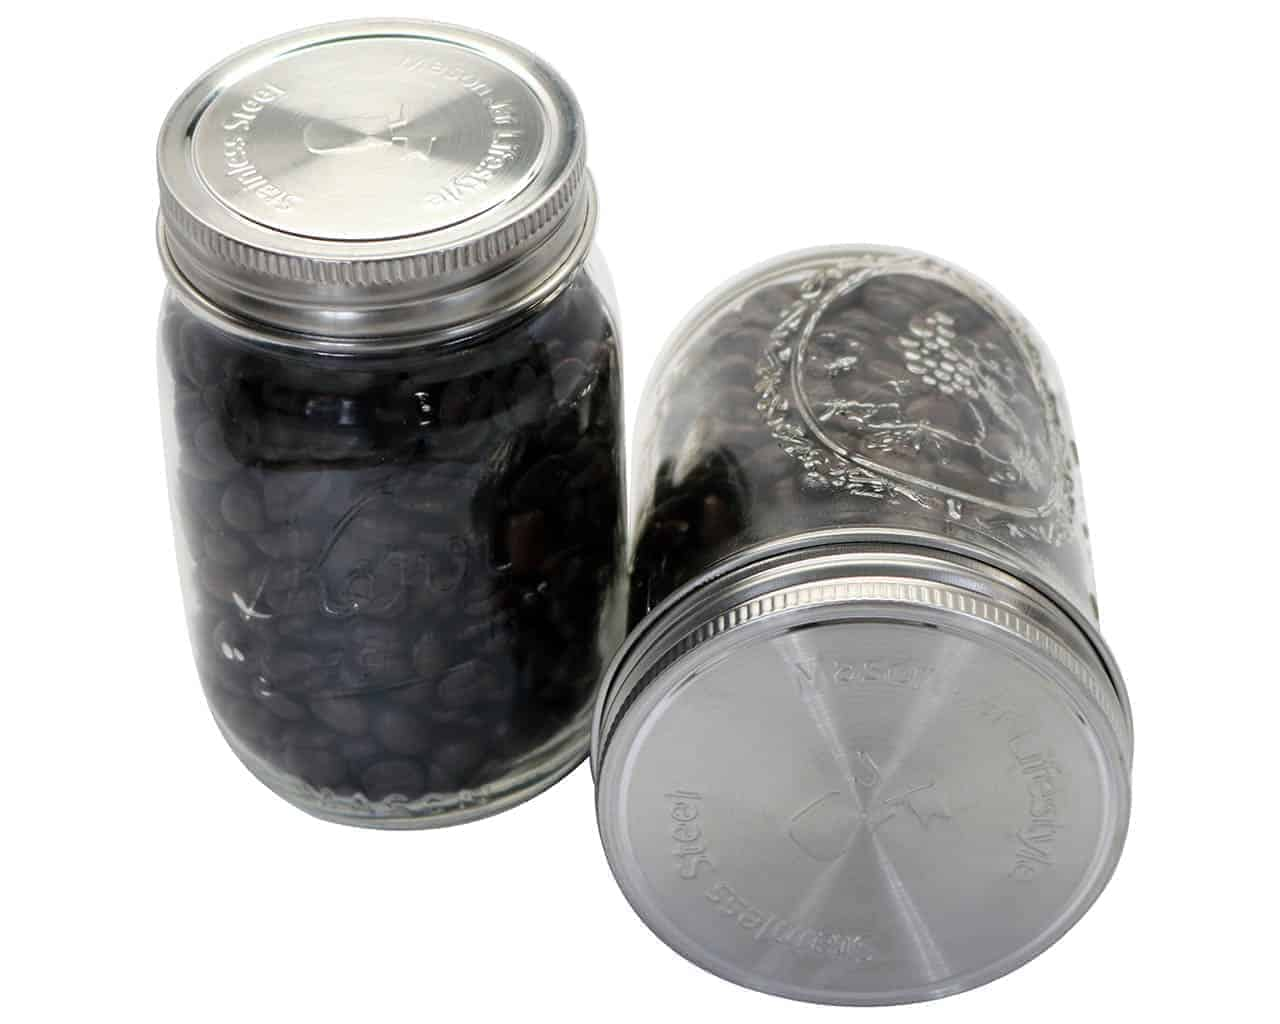 Mason Jar Lifestyle stainless steel rust proof storage lids with leak proof  silicone seals on regular 45ca84e2365c